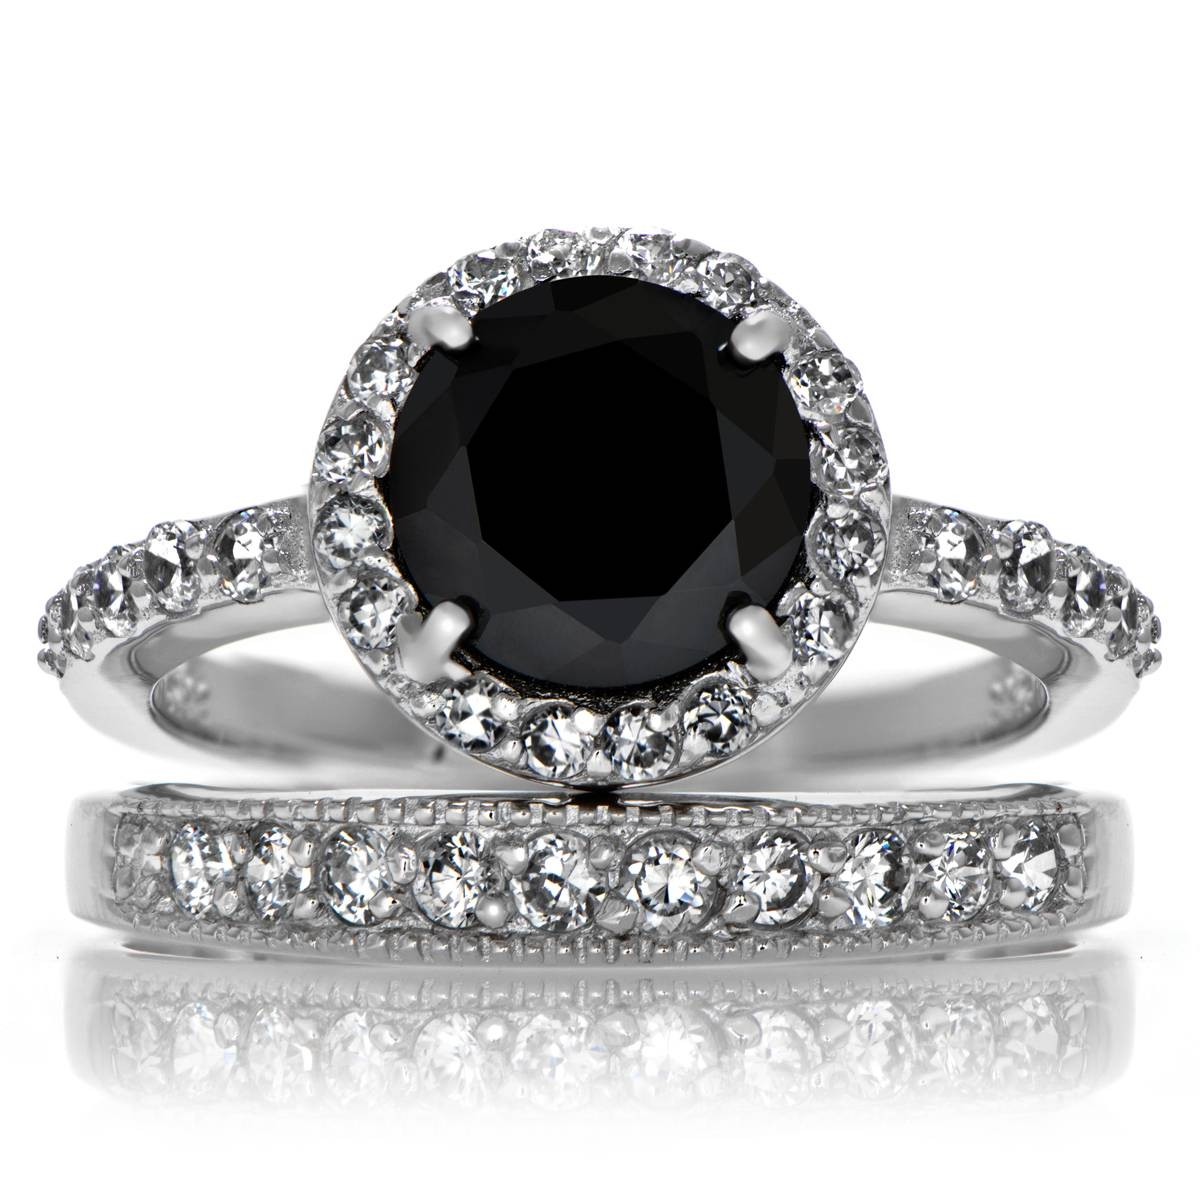 Carrie's Black Cz Ring Set With Regard To Cz Diamond Wedding Rings (Gallery 8 of 15)